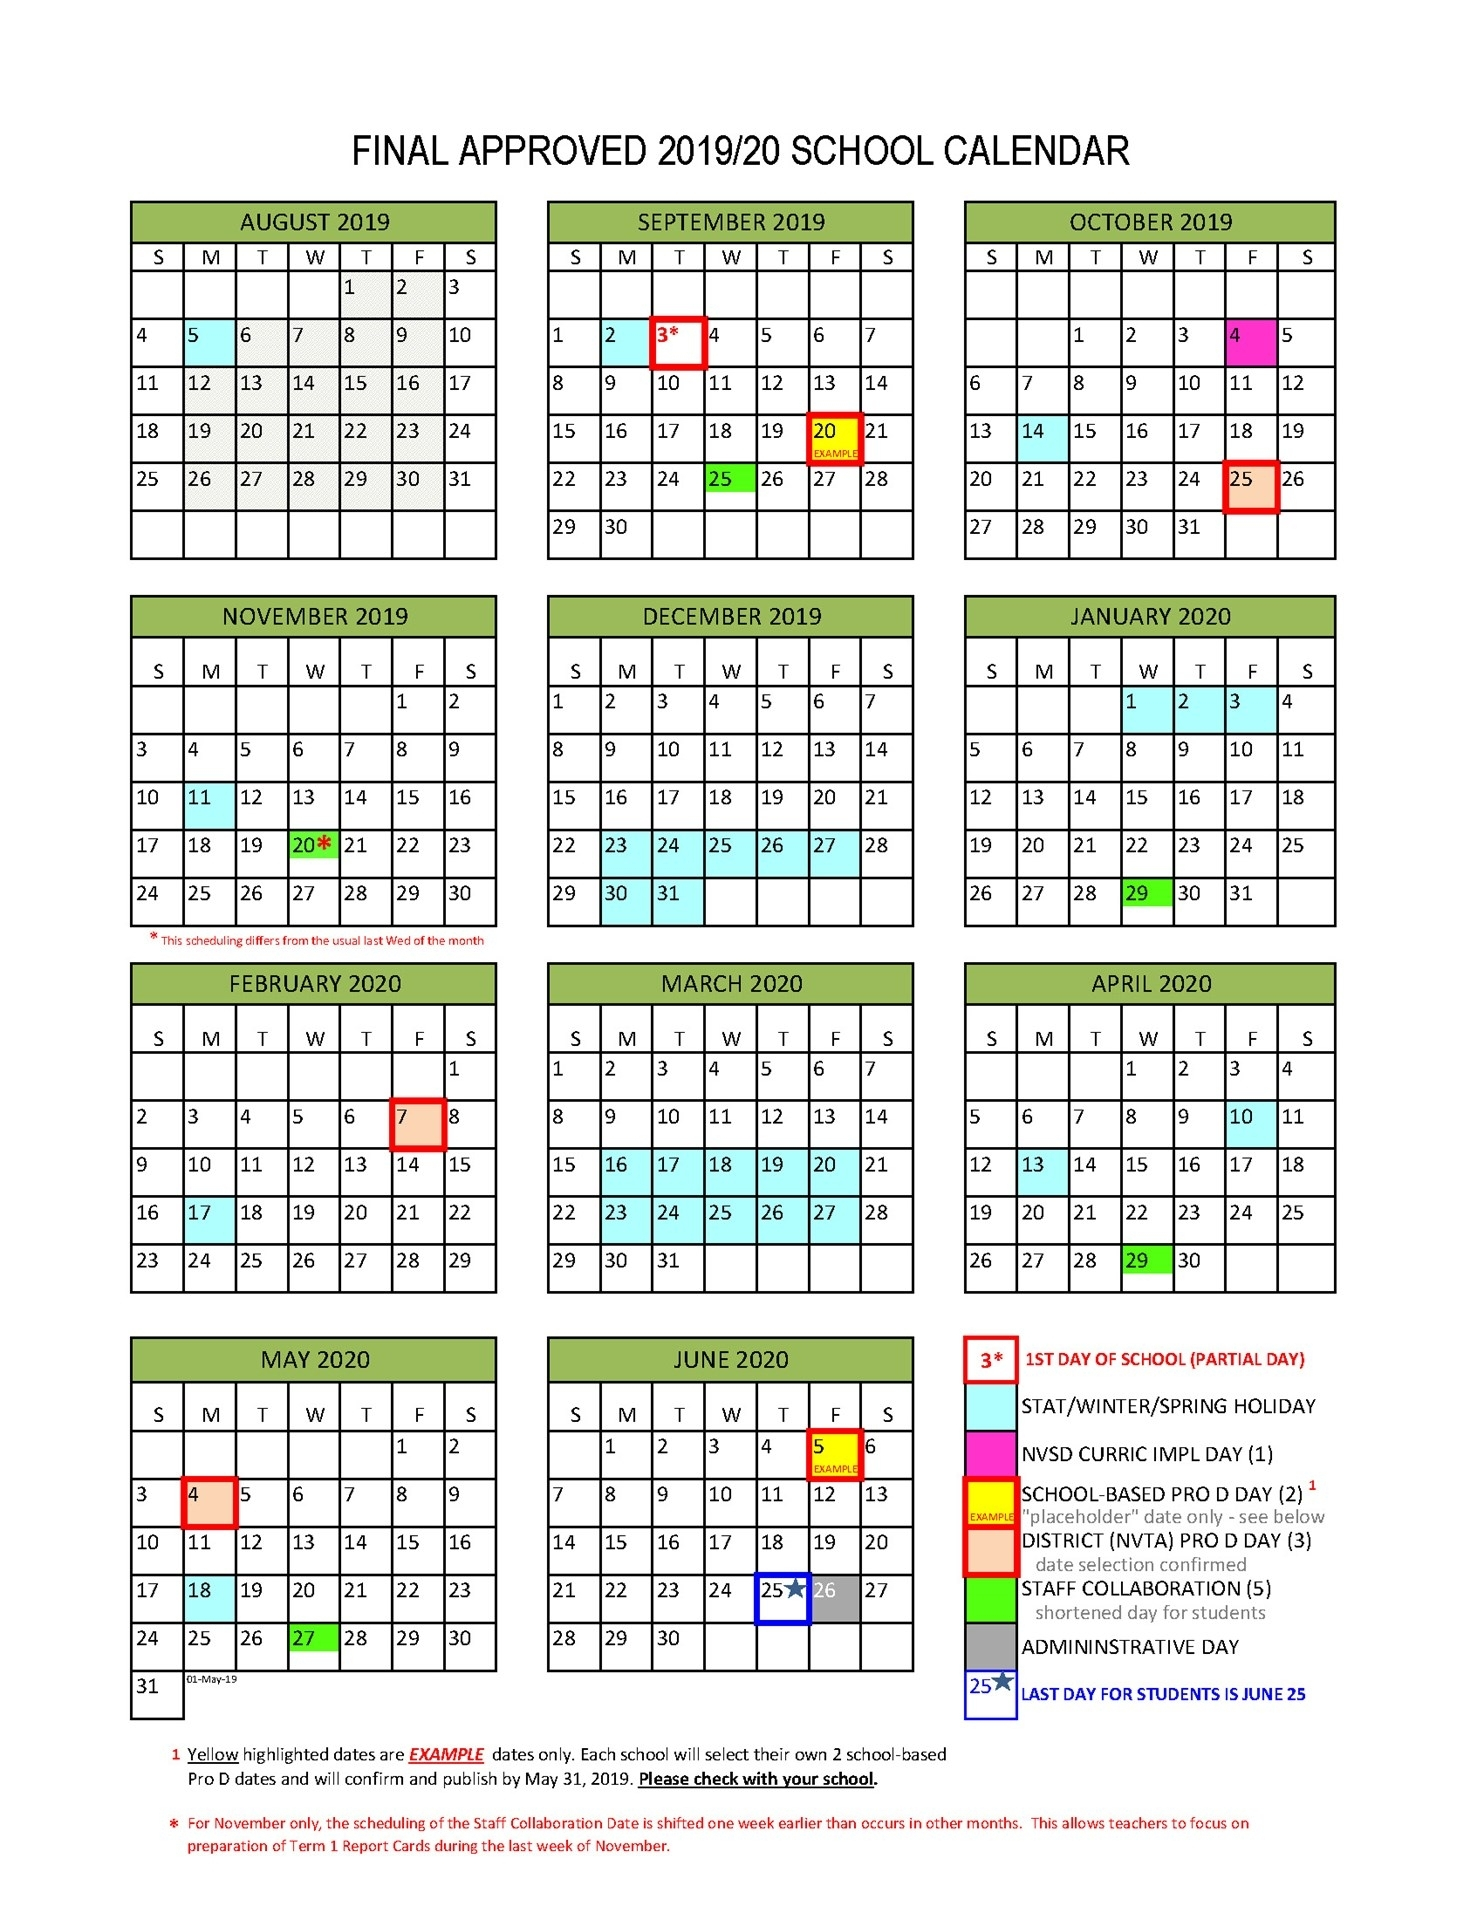 District Calendar - North Vancouver School District throughout Special Days Calendat 2019 For Schools